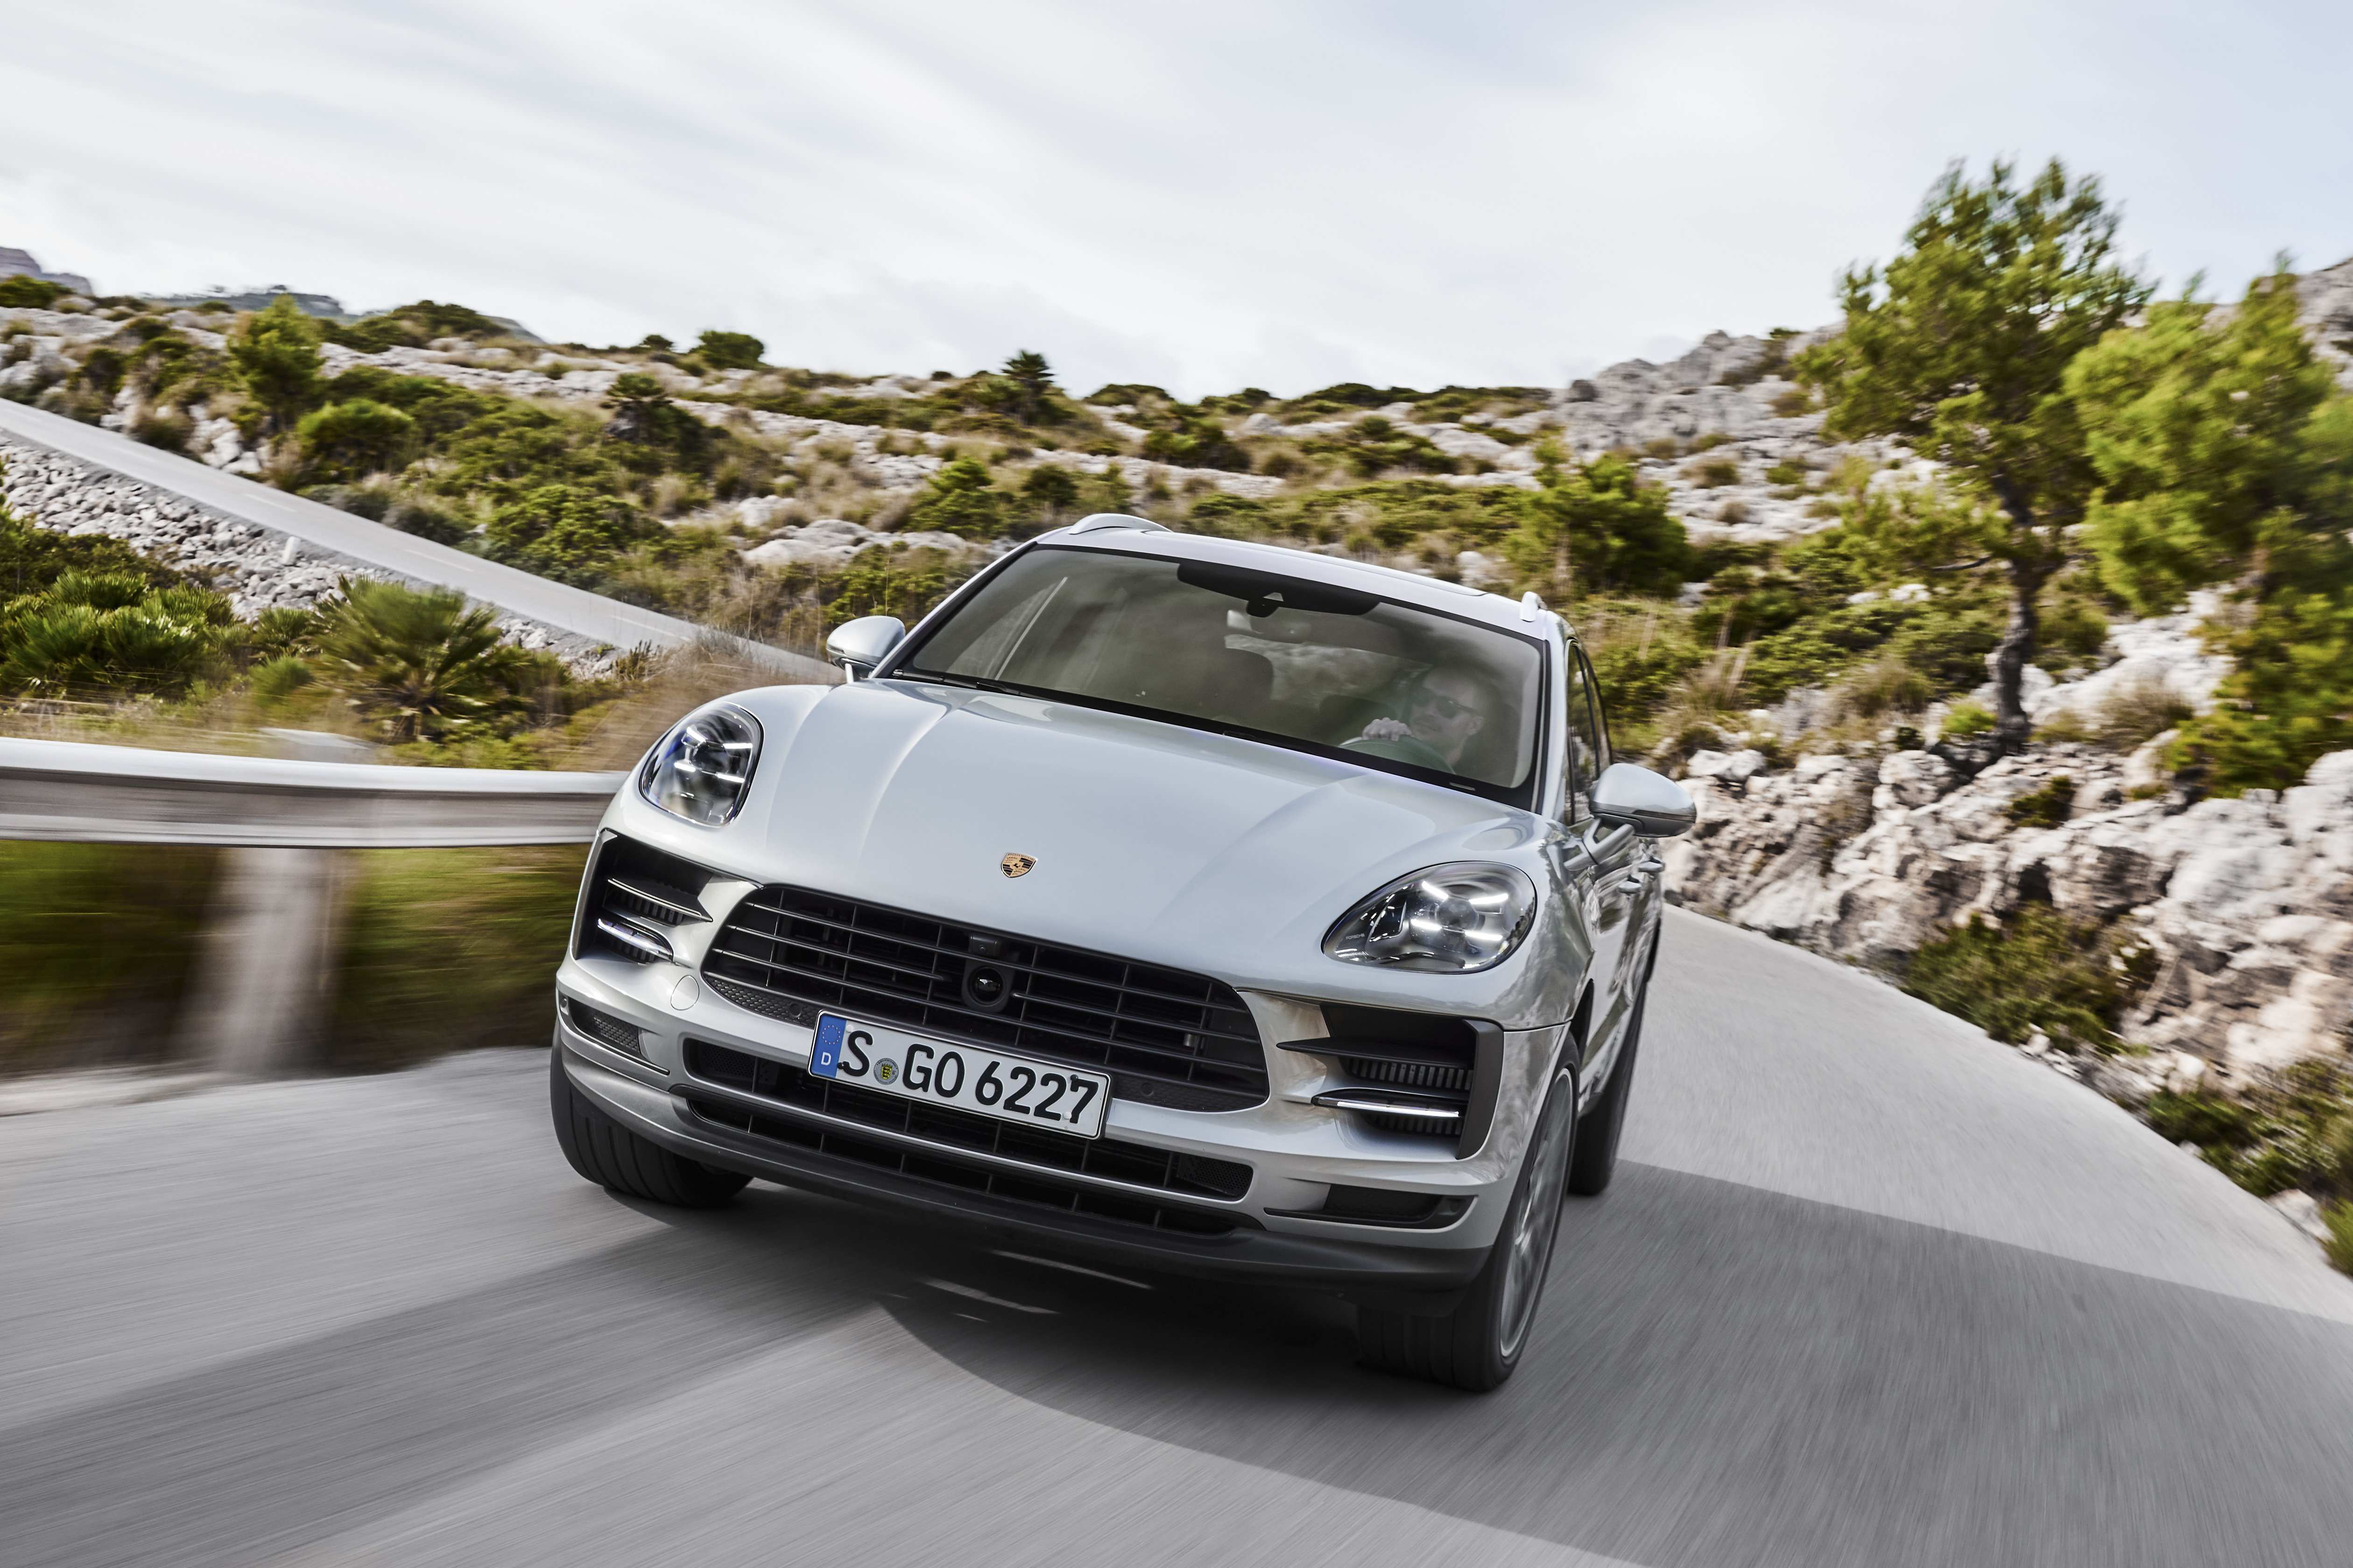 66 Best Review 2020 Porsche Macan Specs and Review with 2020 Porsche Macan